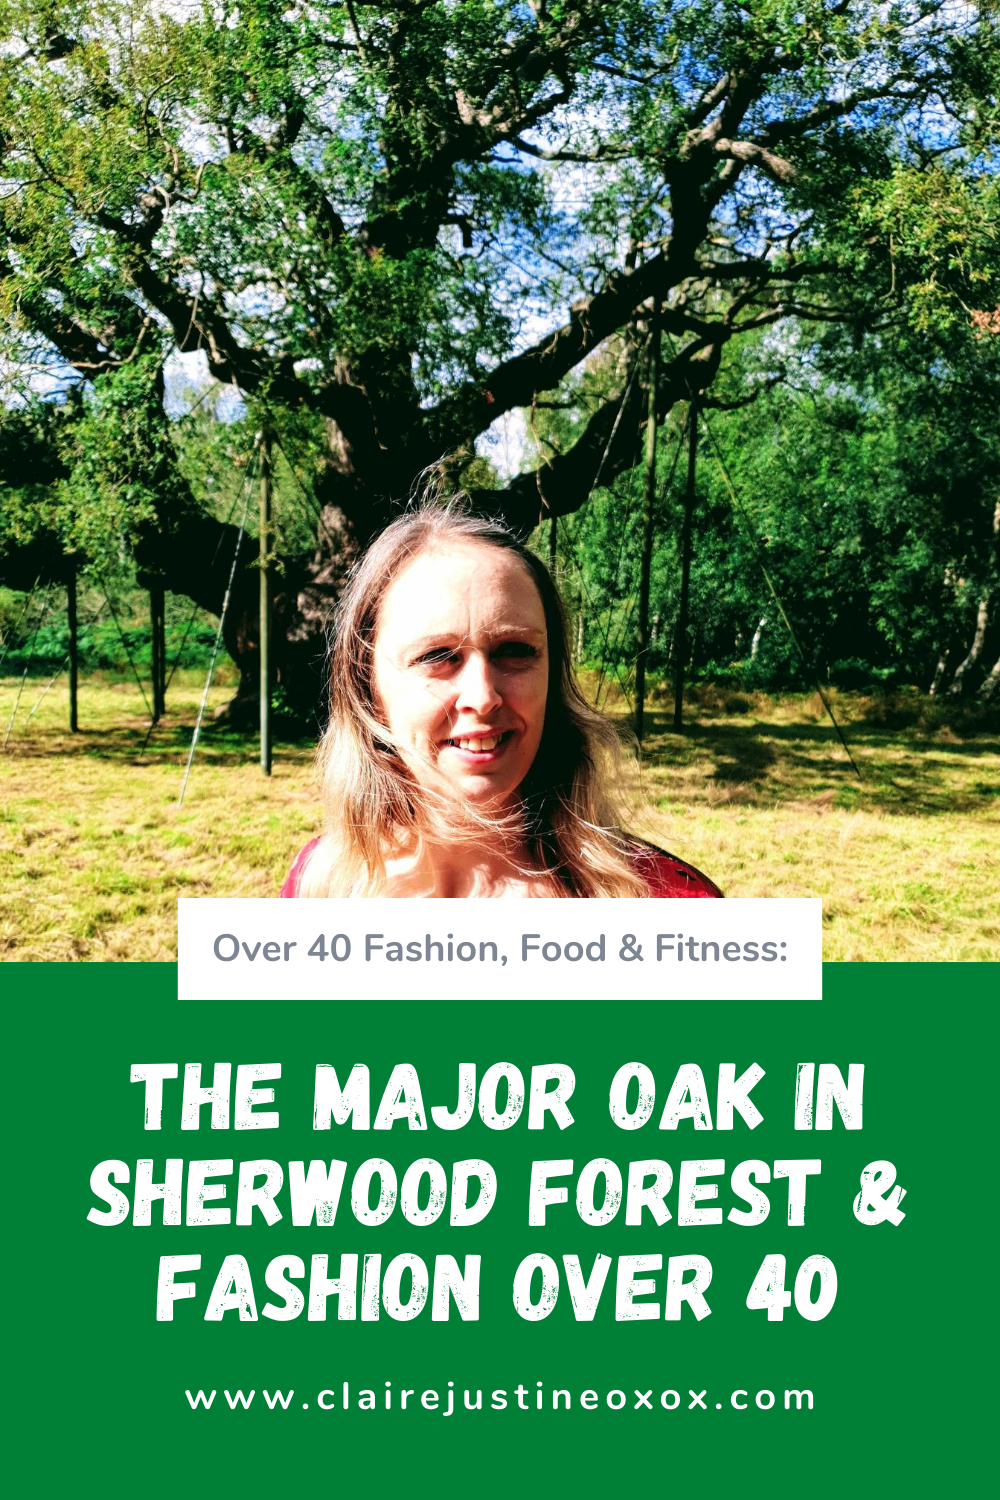 The Major Oak In Sherwood Forest & Fashion Over 40.